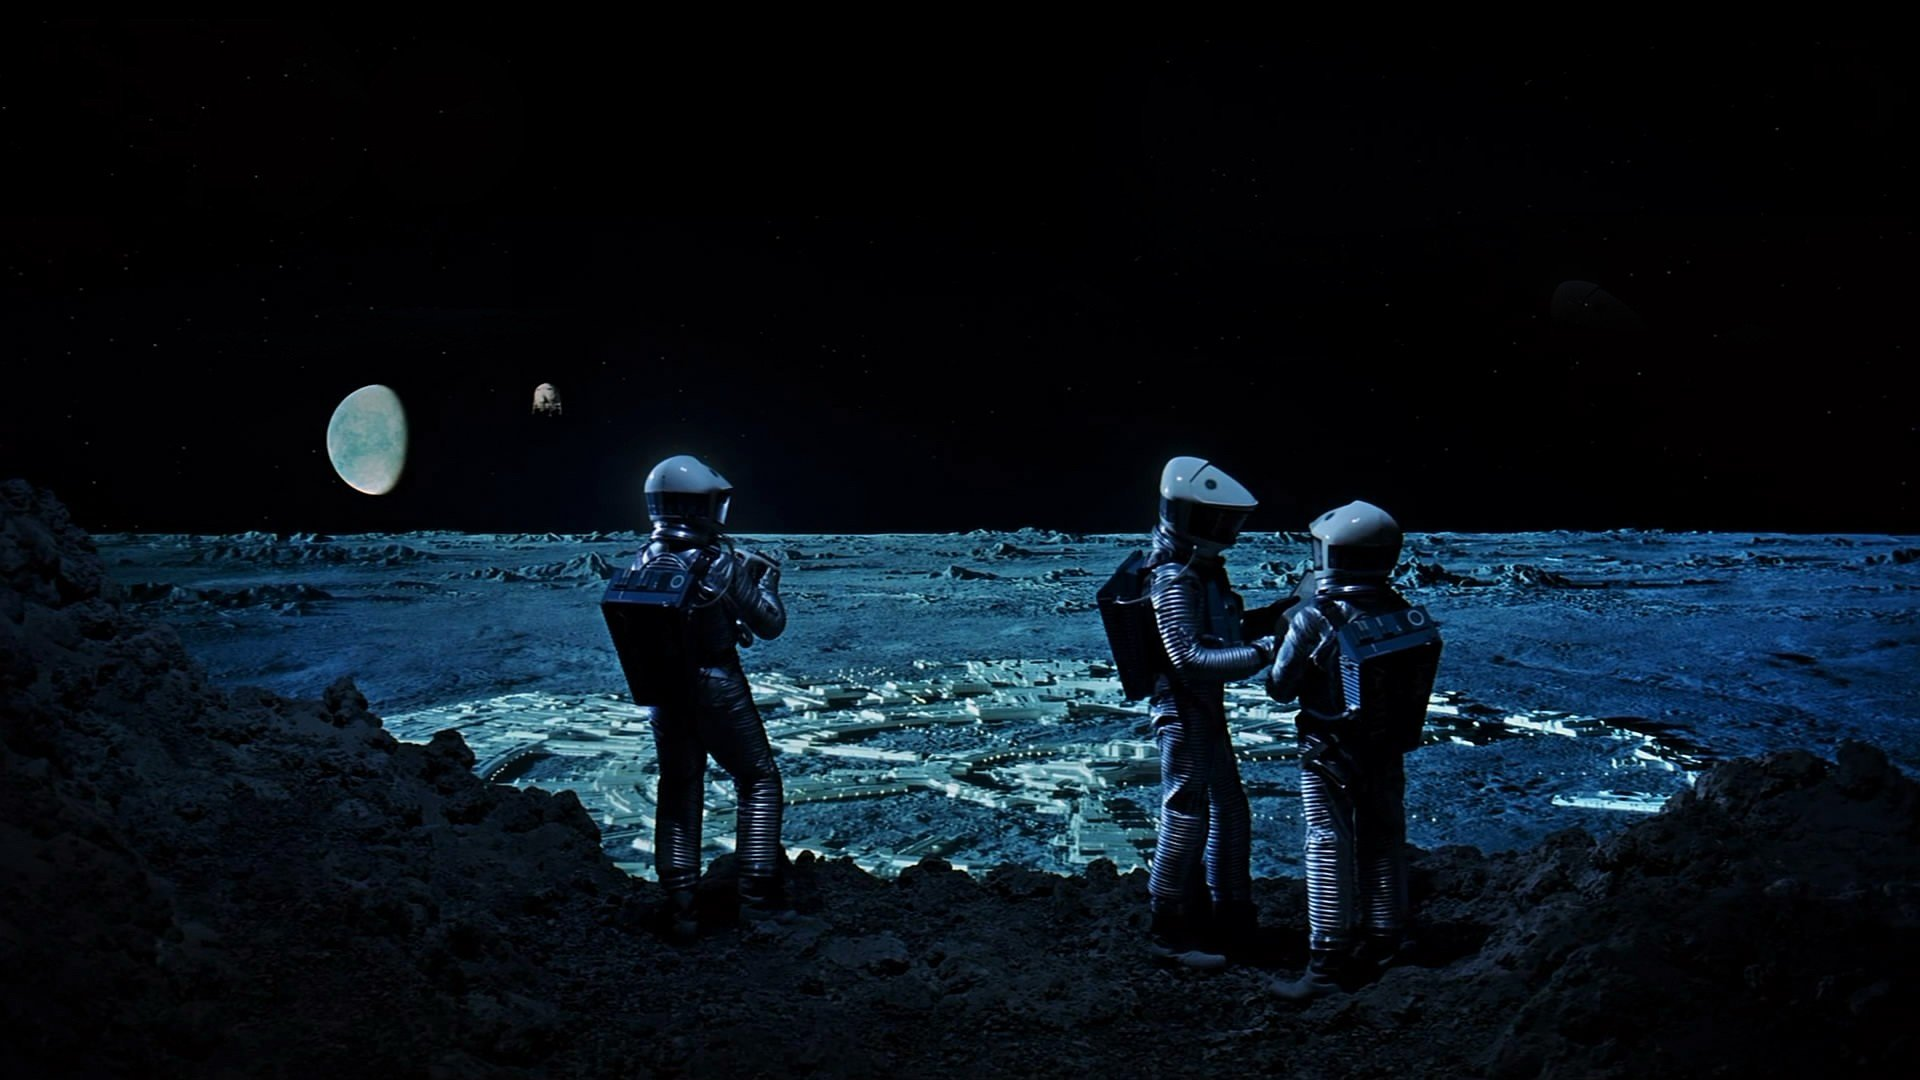 2001 A Space Odyssey anniversary